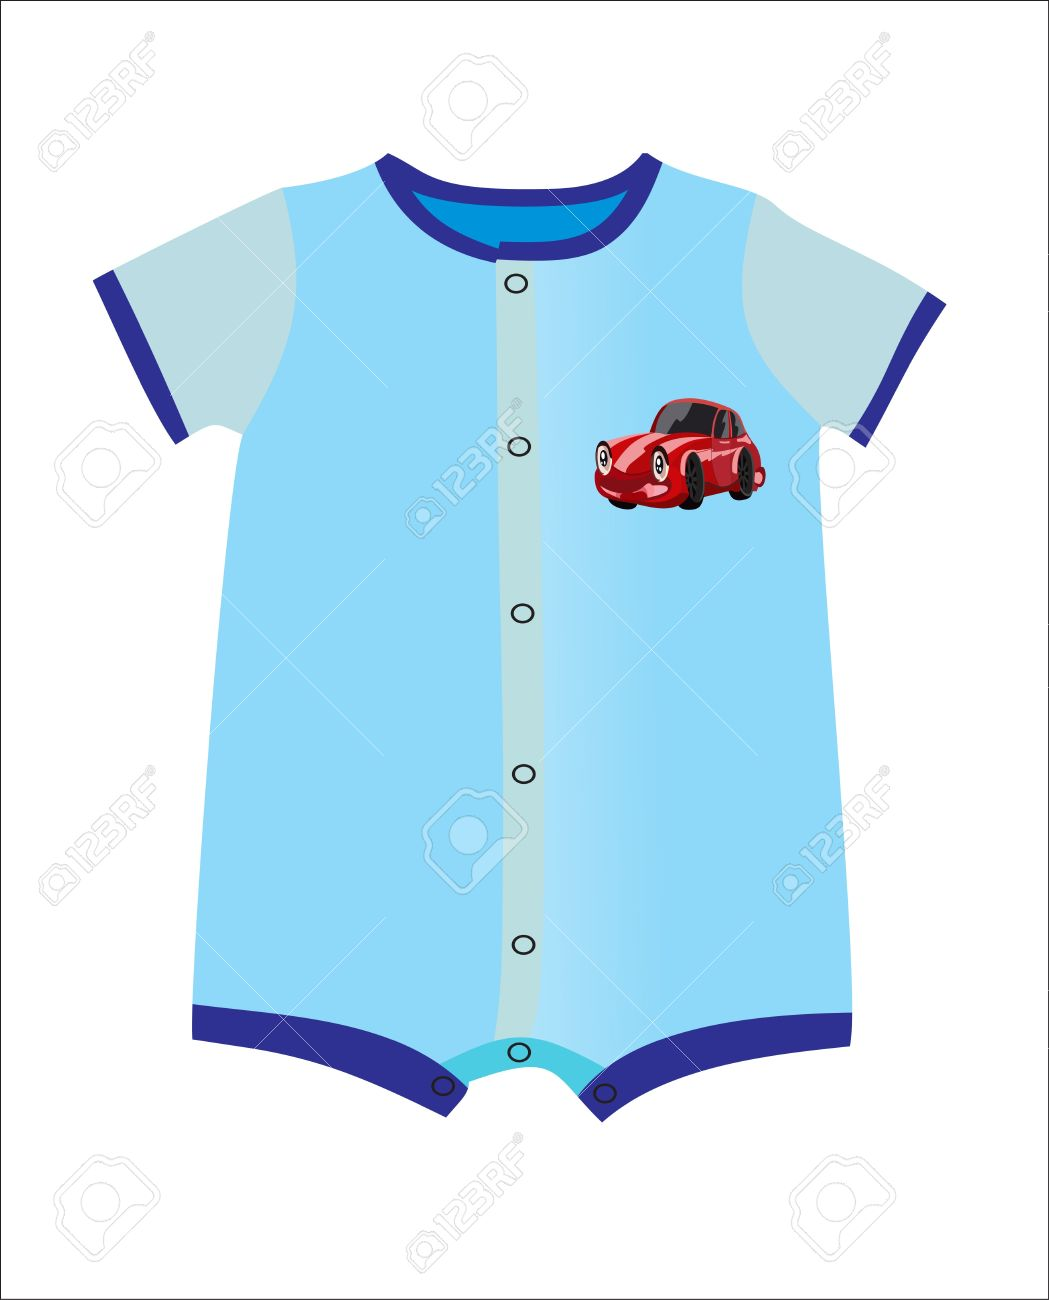 Baby Vest Clipart   Free download on ClipArtMag